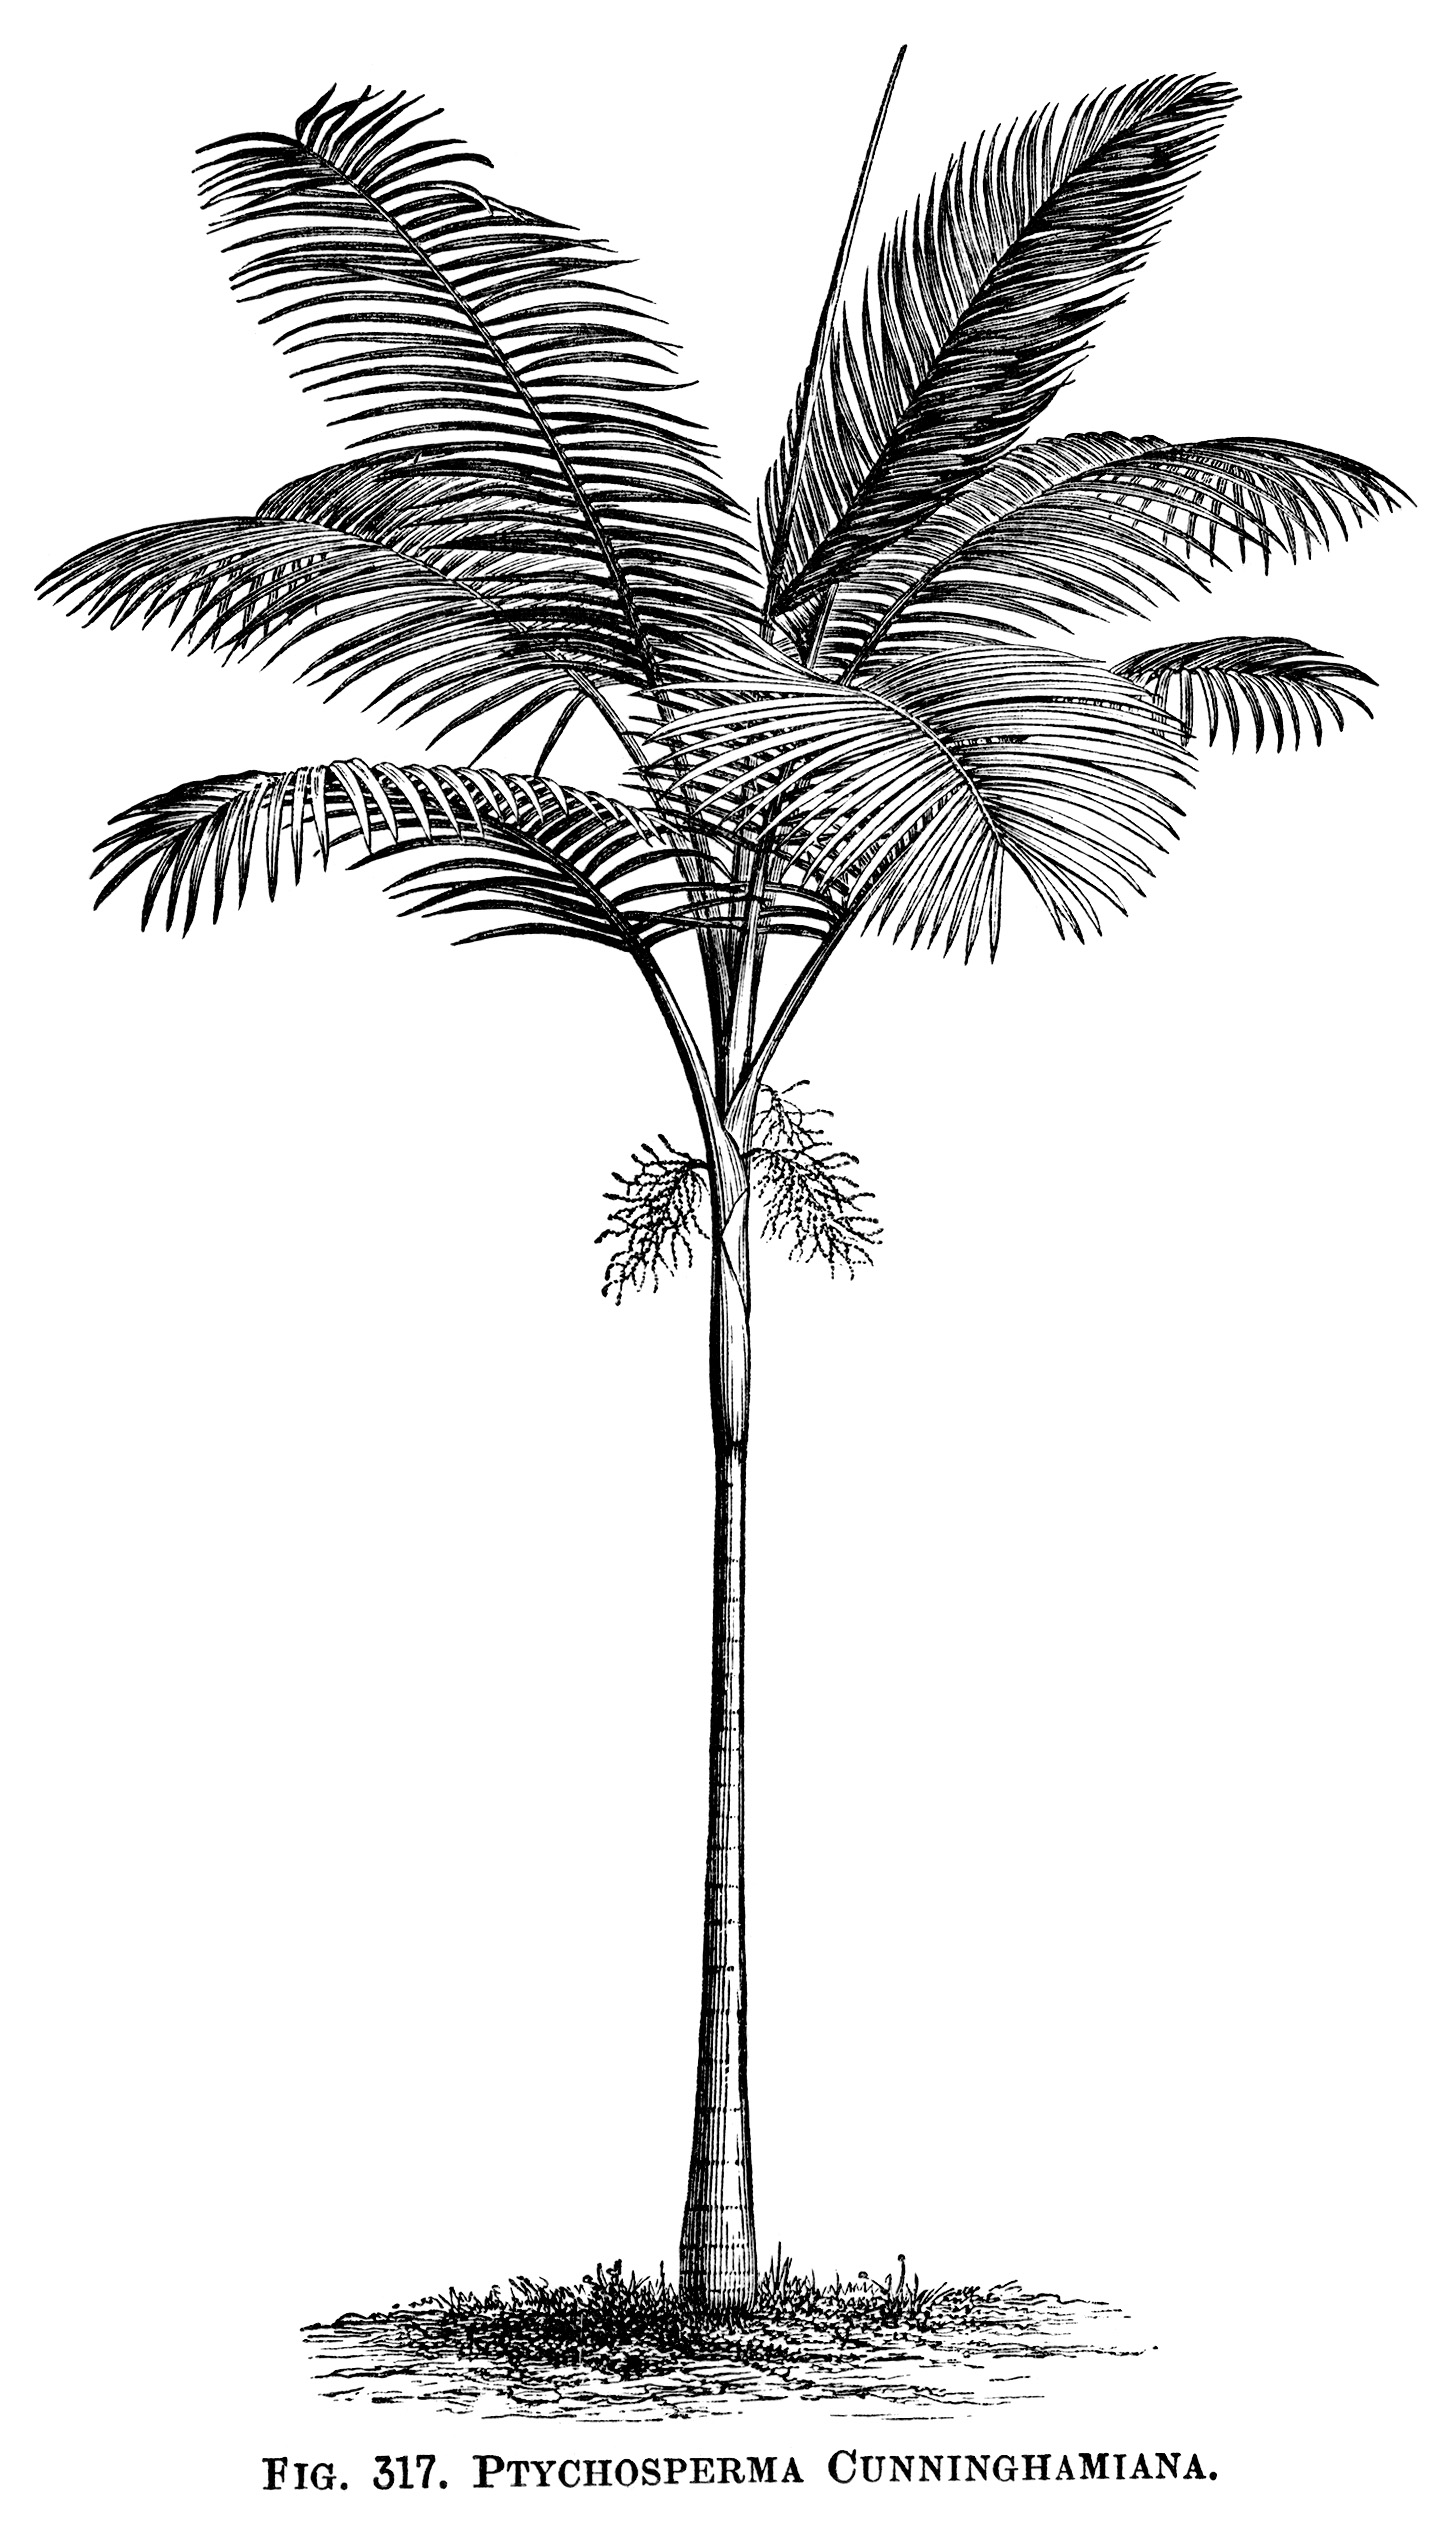 vintage palm tree clip art, black and white graphics, tree engraving, botanical palm tree illustration, tropical tree image, aaa Ptychosperma Cunninghamiana